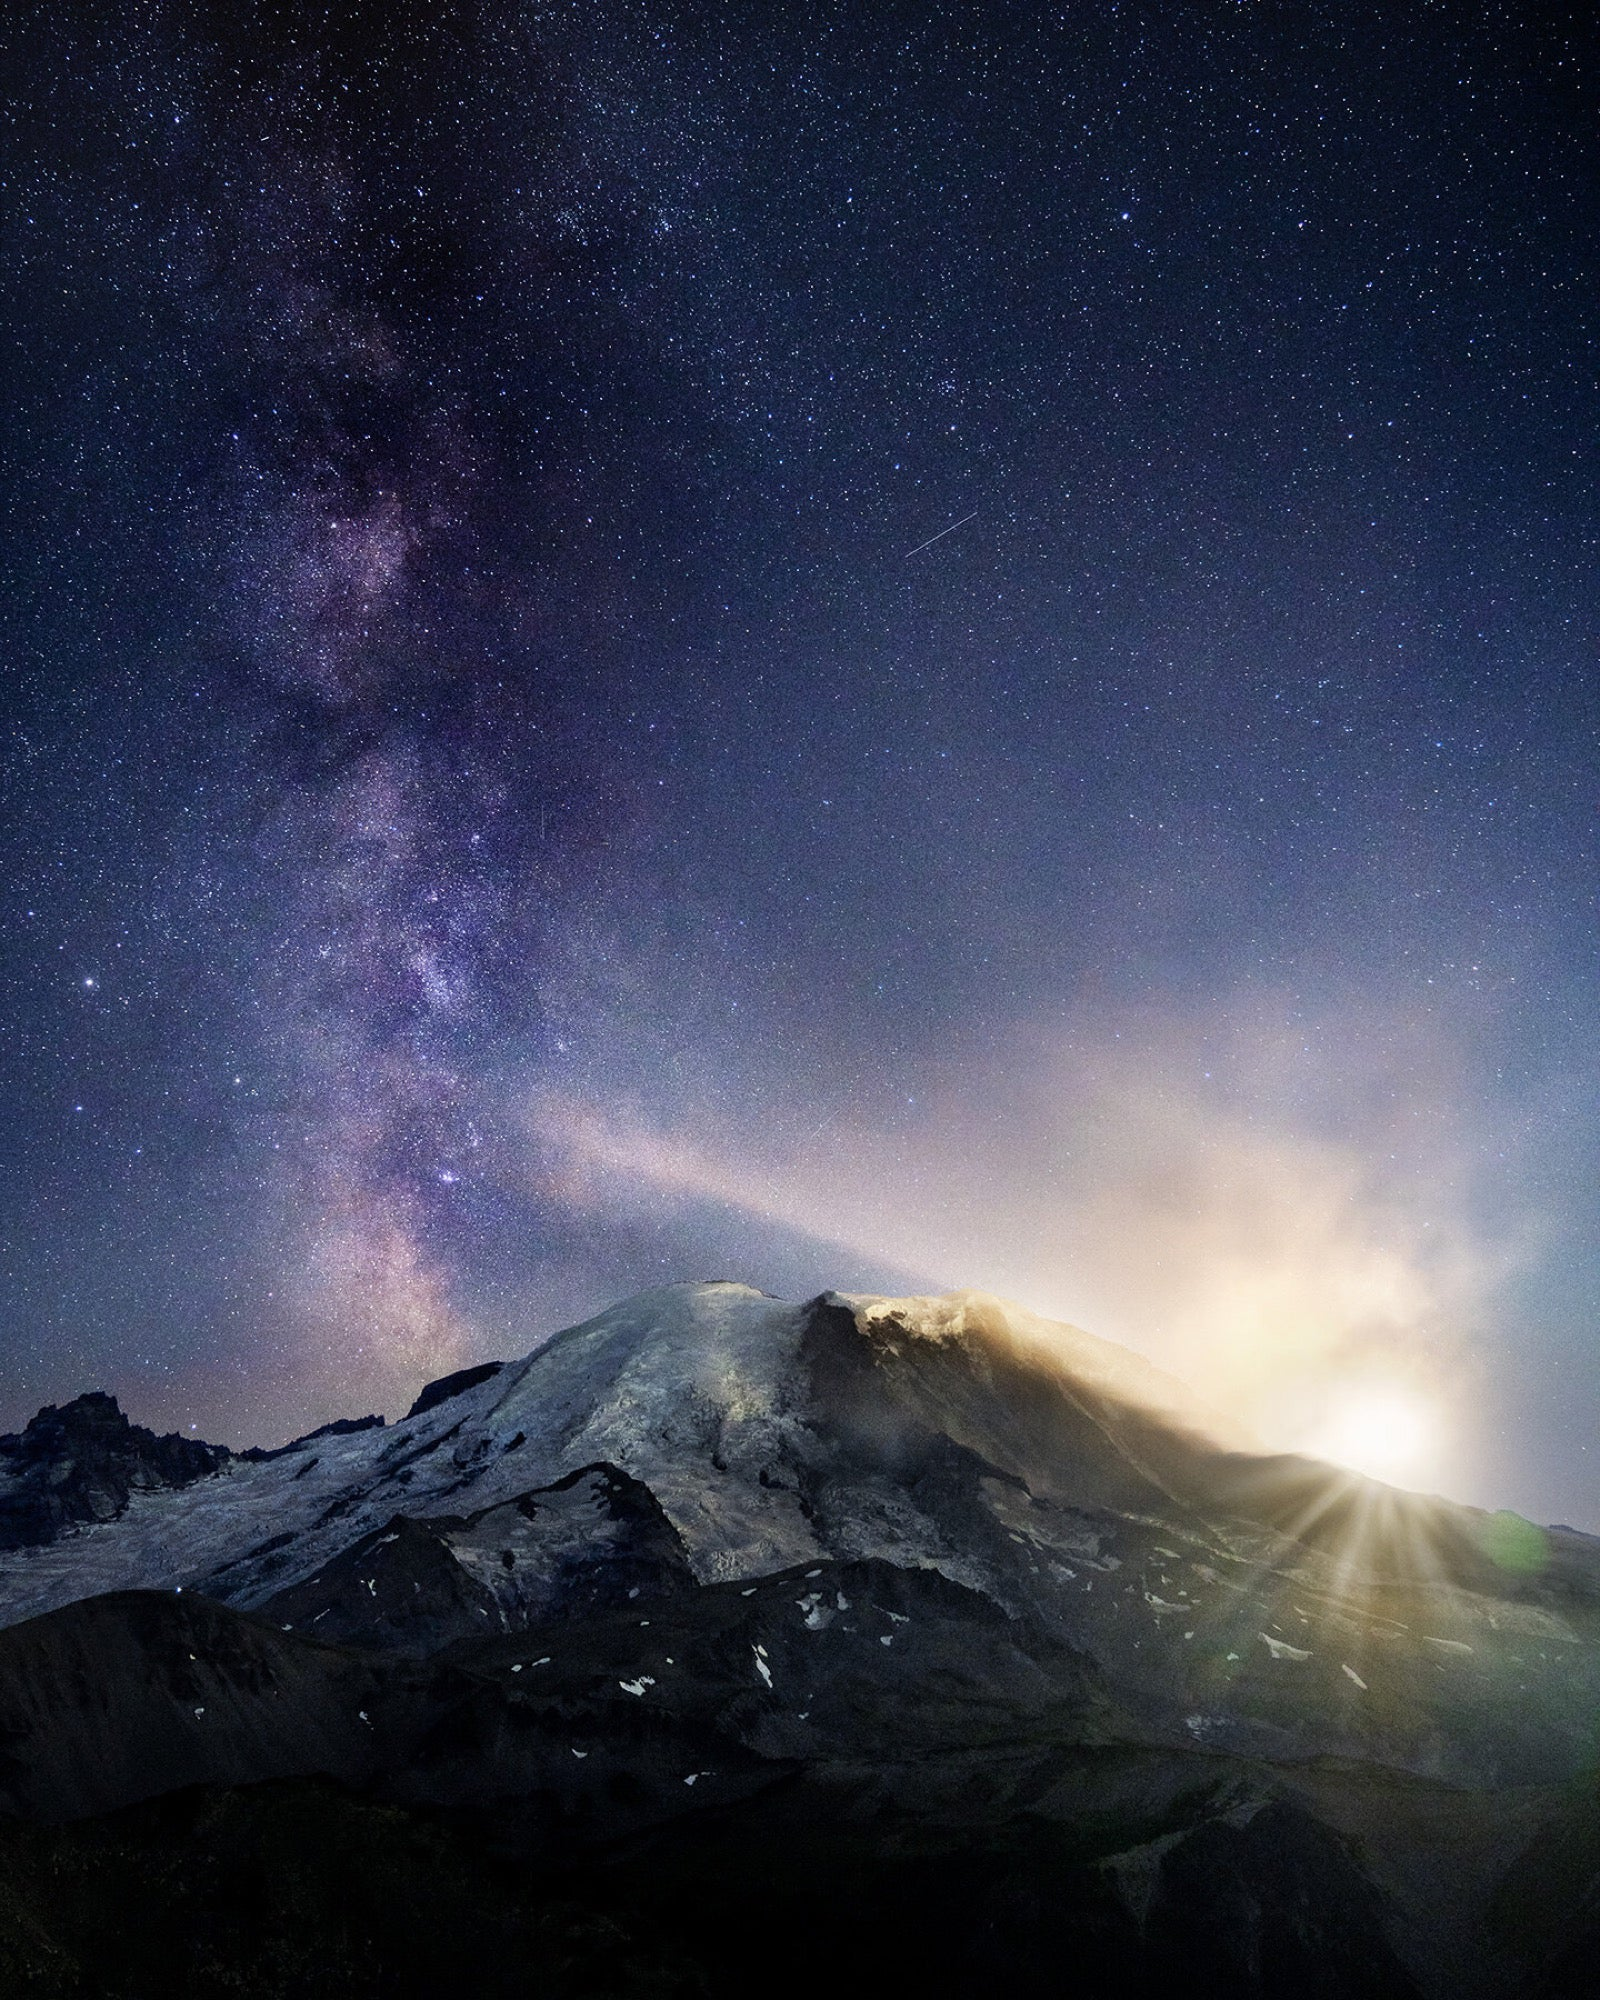 Alpha-Universe-photo-by-Autumn-Schrock-autpops-autumnschrock_rainier_moon_mw.jpg